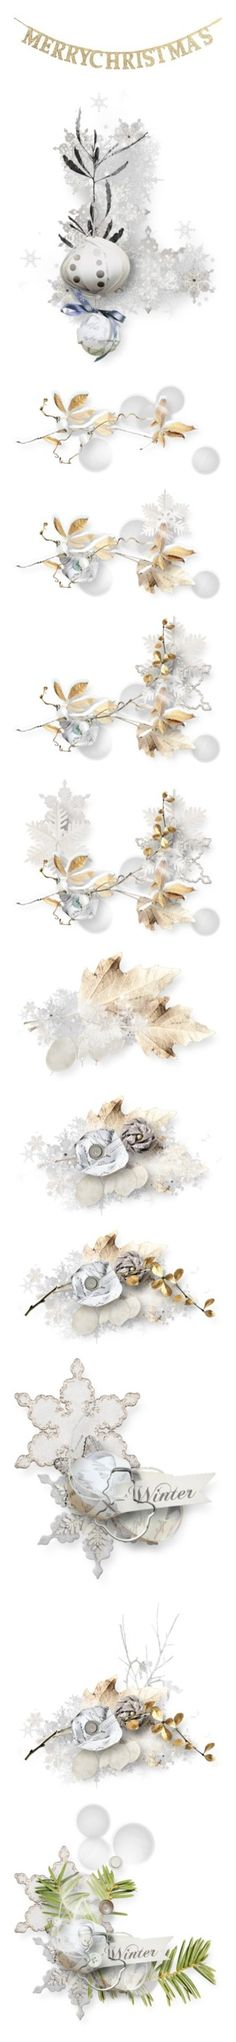 """Winter Holiday Christmas Scrap Elements Fillers VII"" by alisa138 ❤ liked on Polyvore featuring home, home decor, holiday decorations, christmas, holiday, xmas, fillers, text, quotes and phrase"